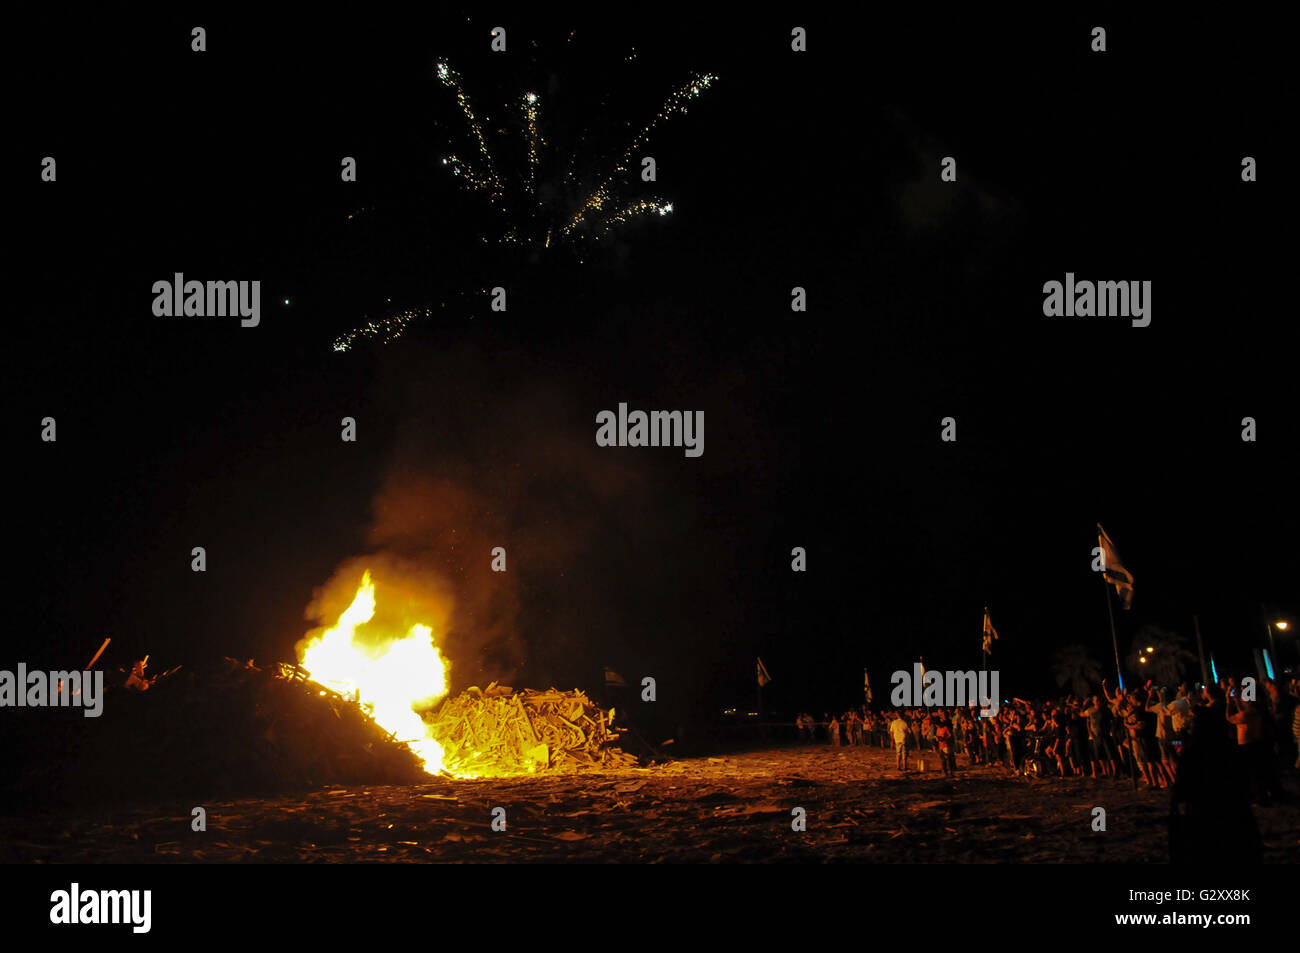 Celebrating the Jewish holiday of Lag Baomer with a bonfire and fireworks - Stock Image